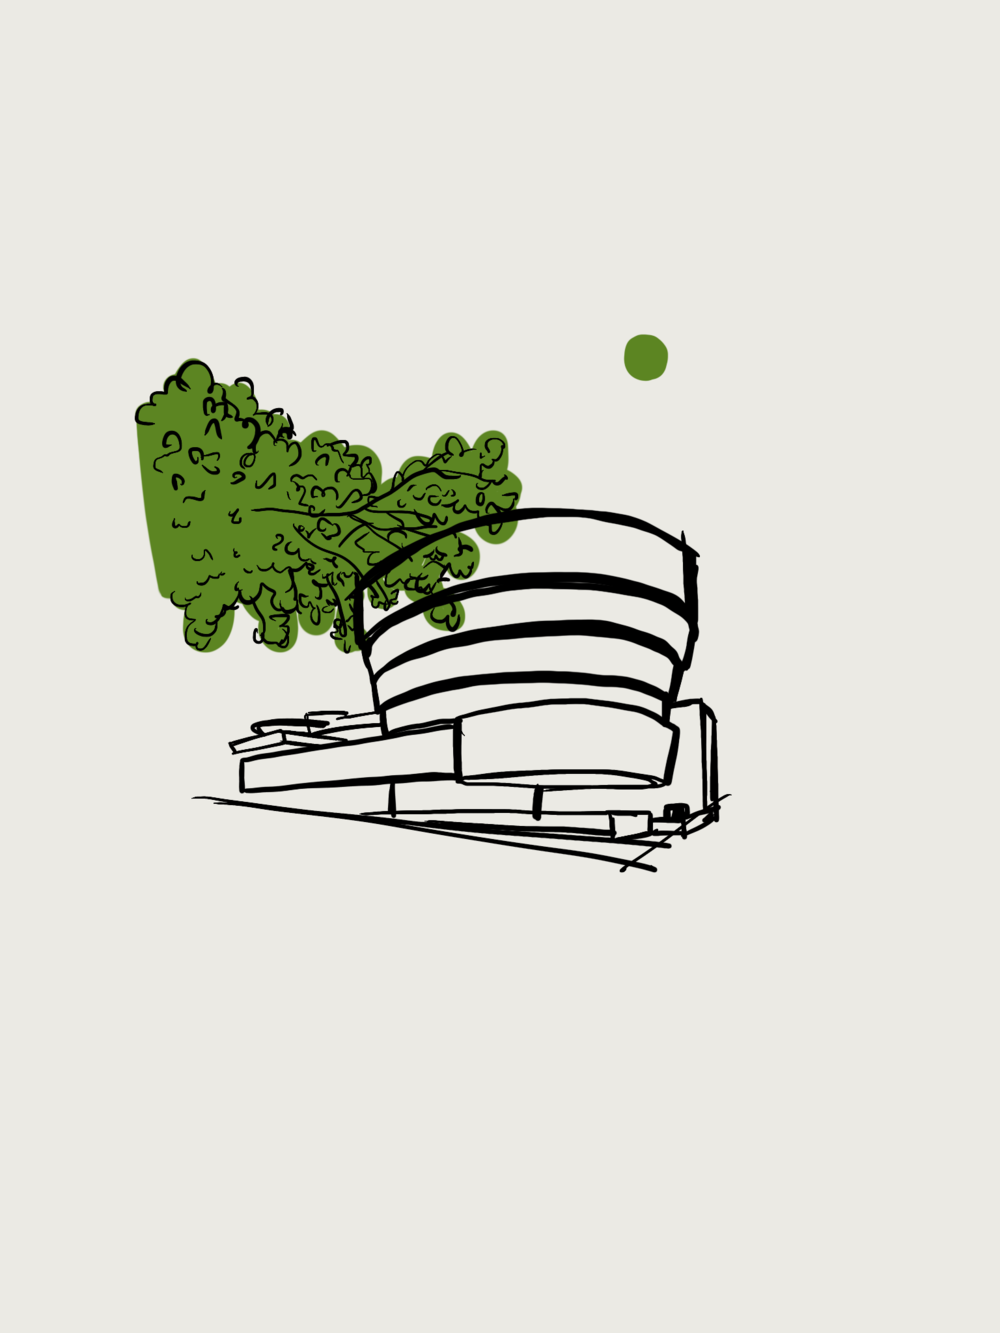 Guggenheim - Digital Illustration